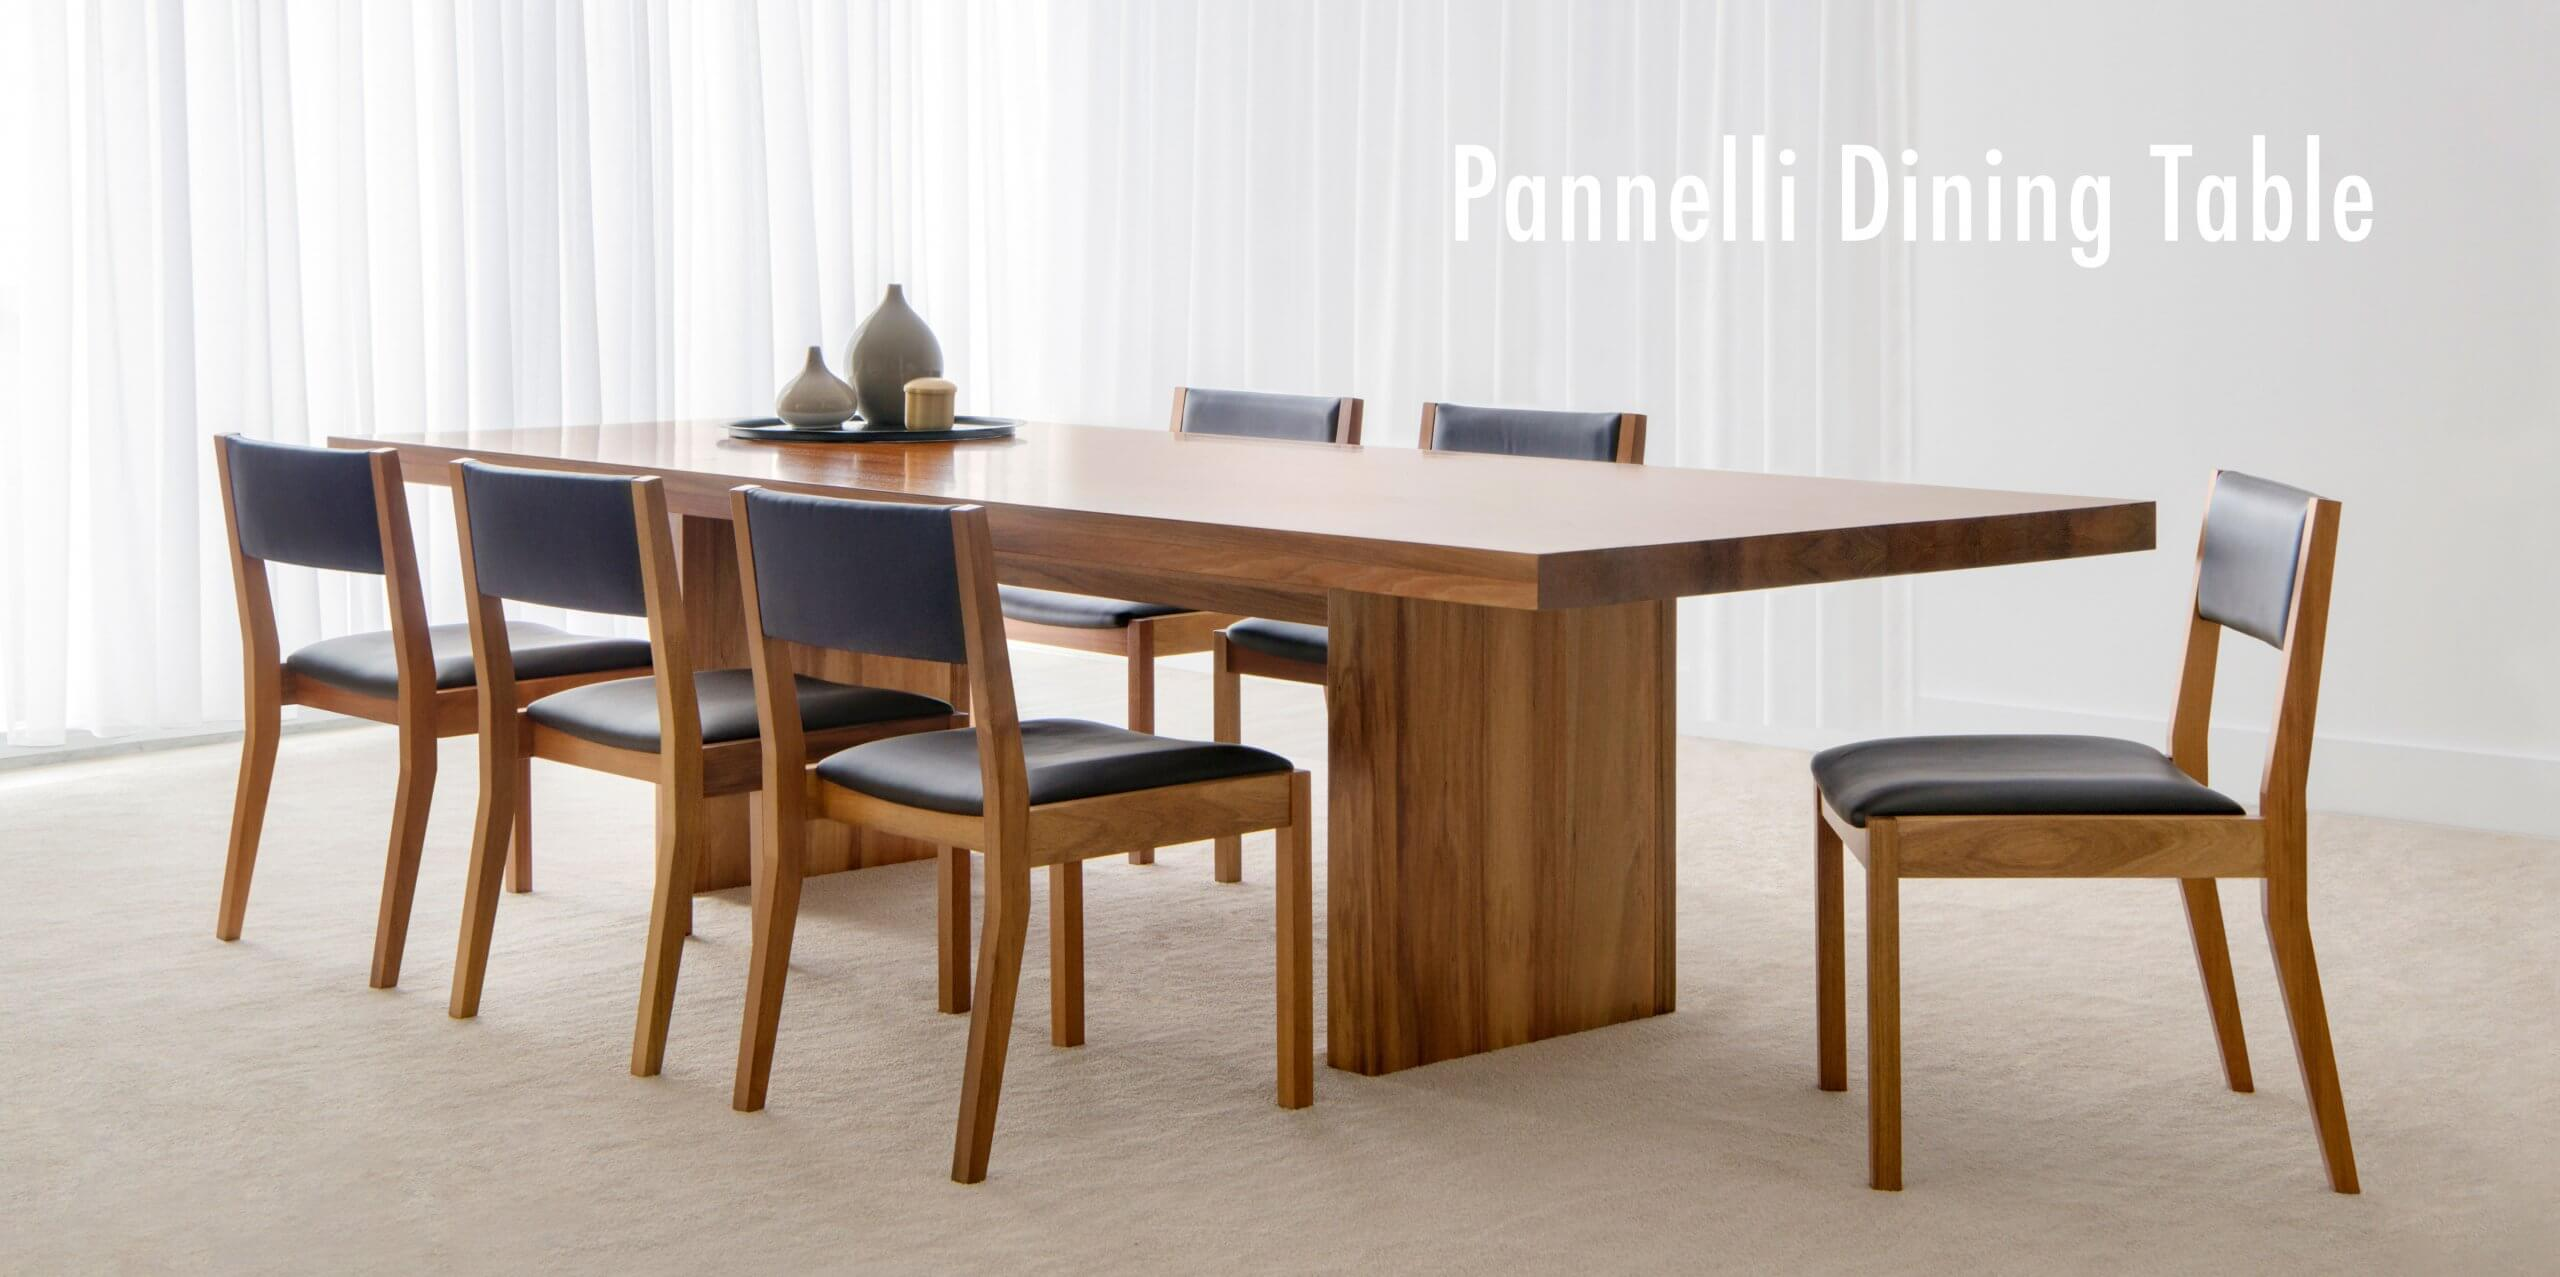 Pannelli Dining Table with Dane Dining Chair